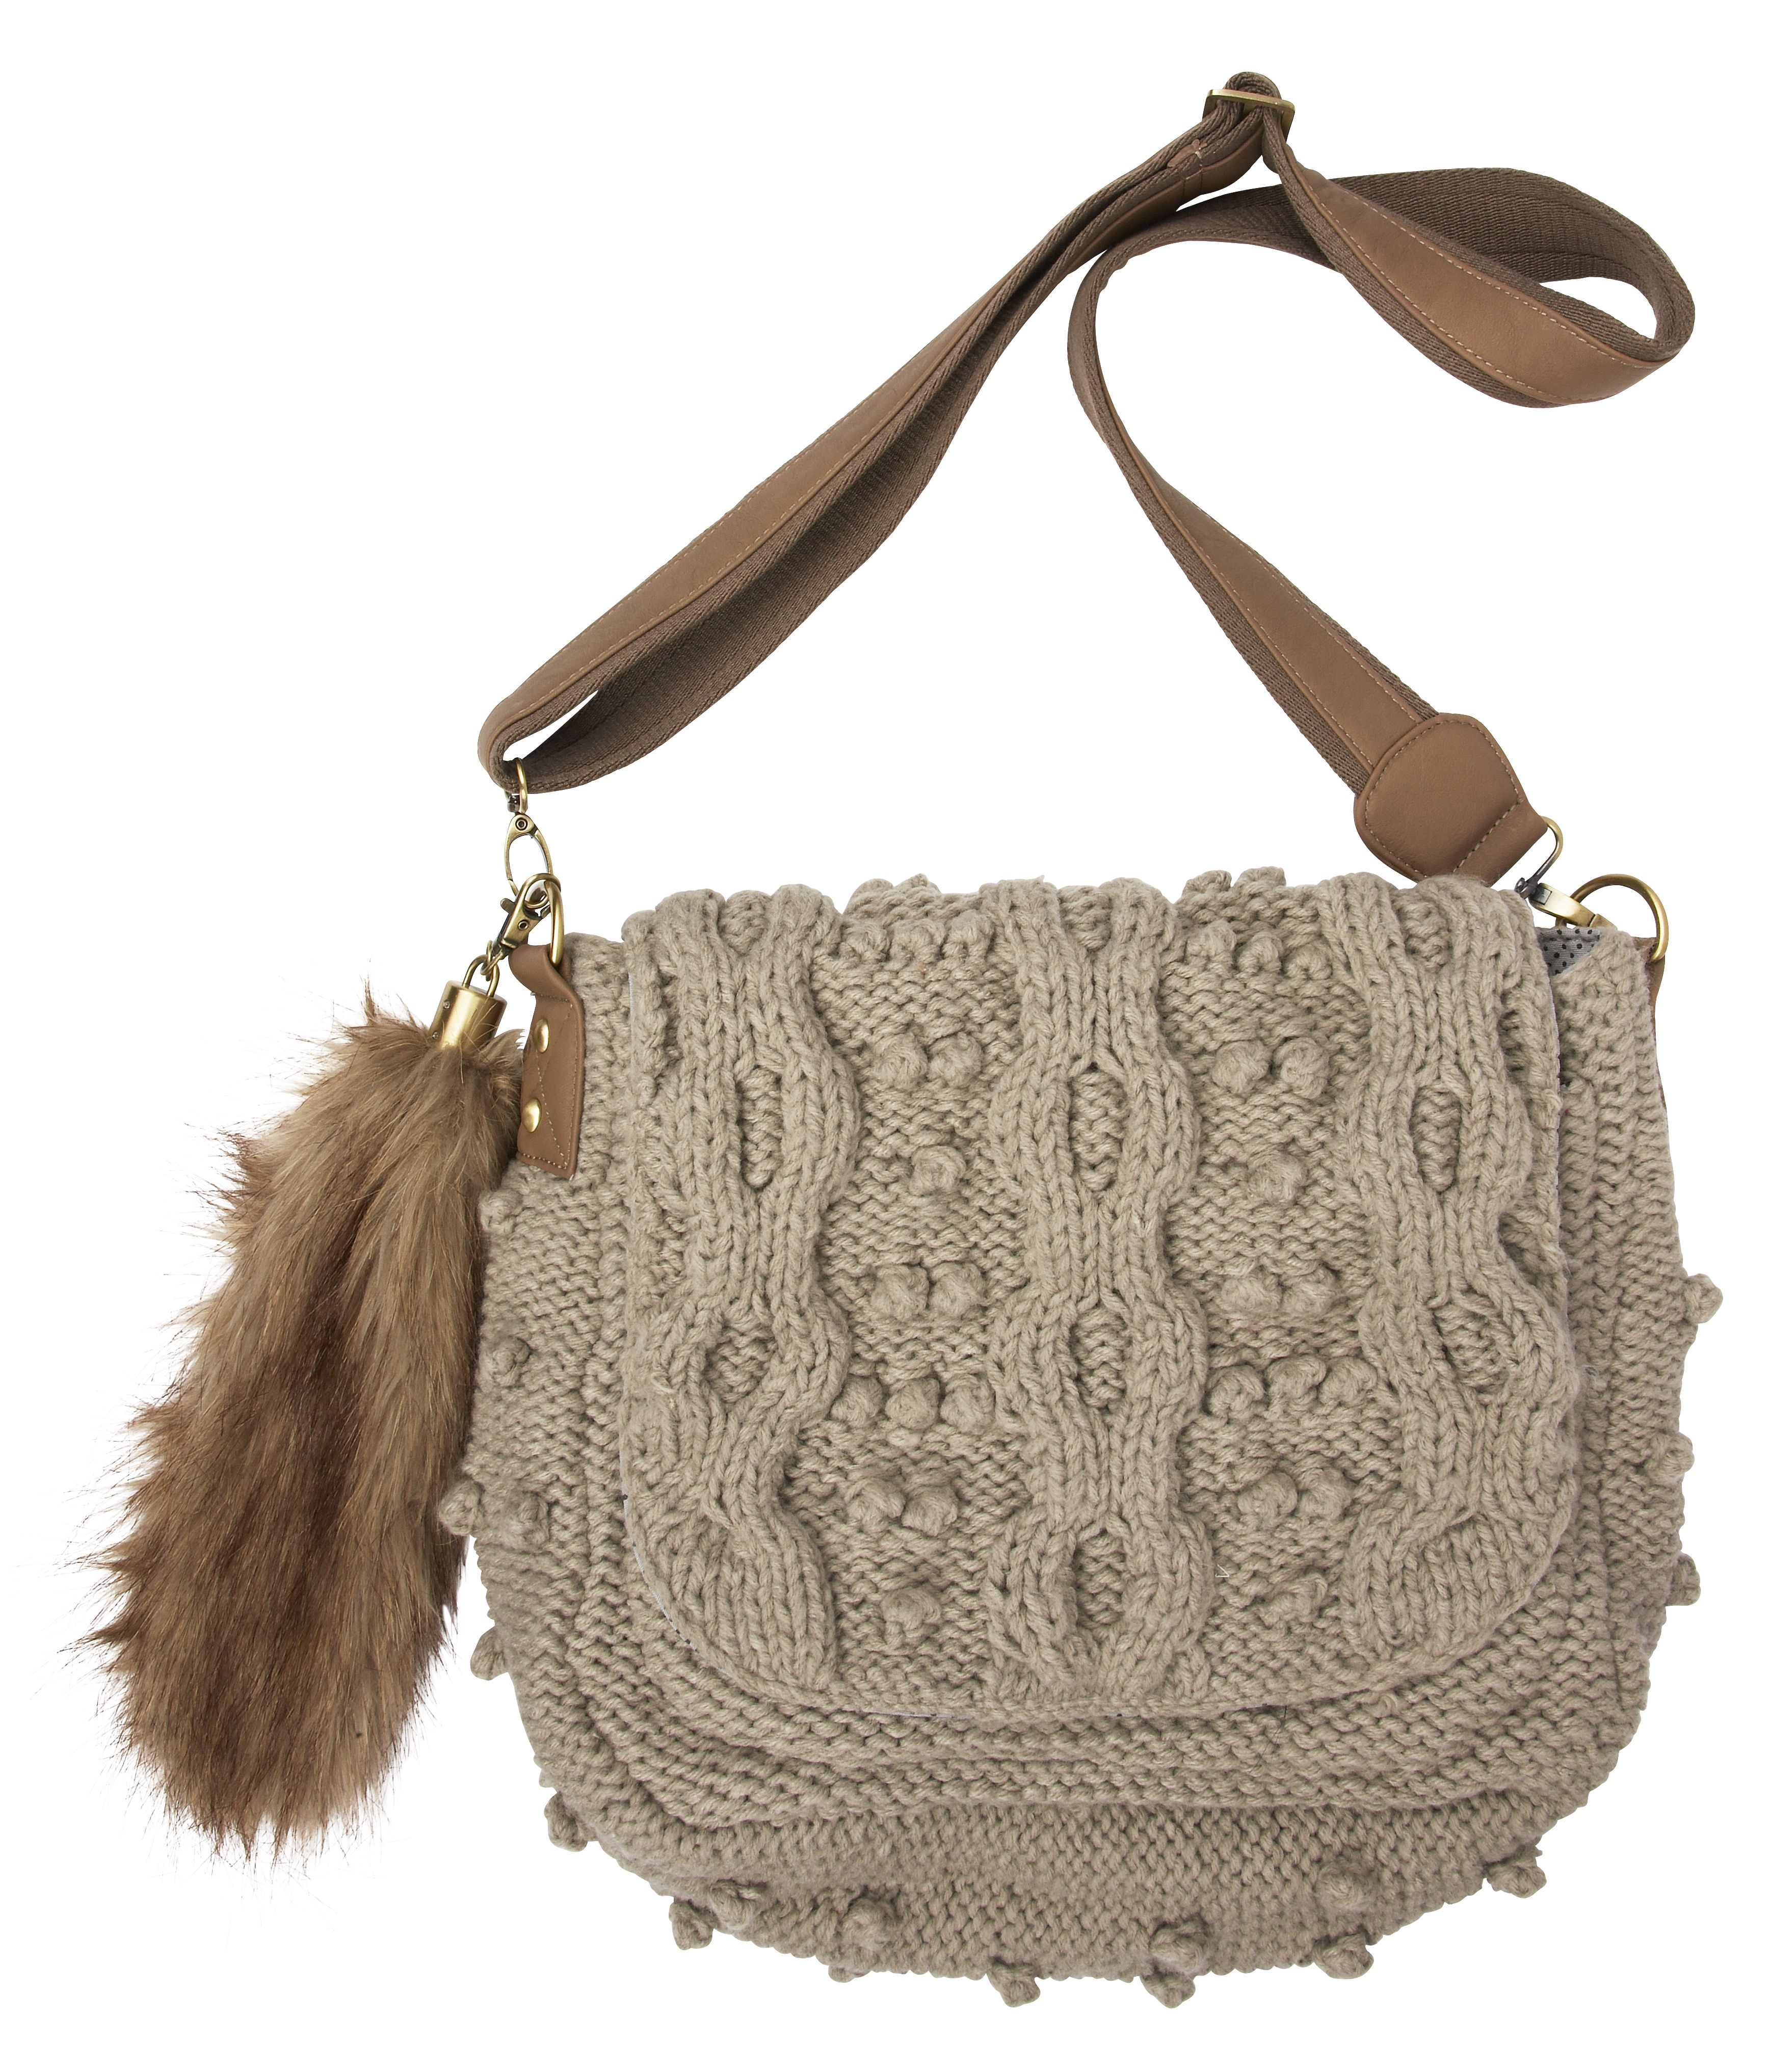 Knitted bag diy pinterest knitted bags bag and crochet knitted bag bankloansurffo Gallery